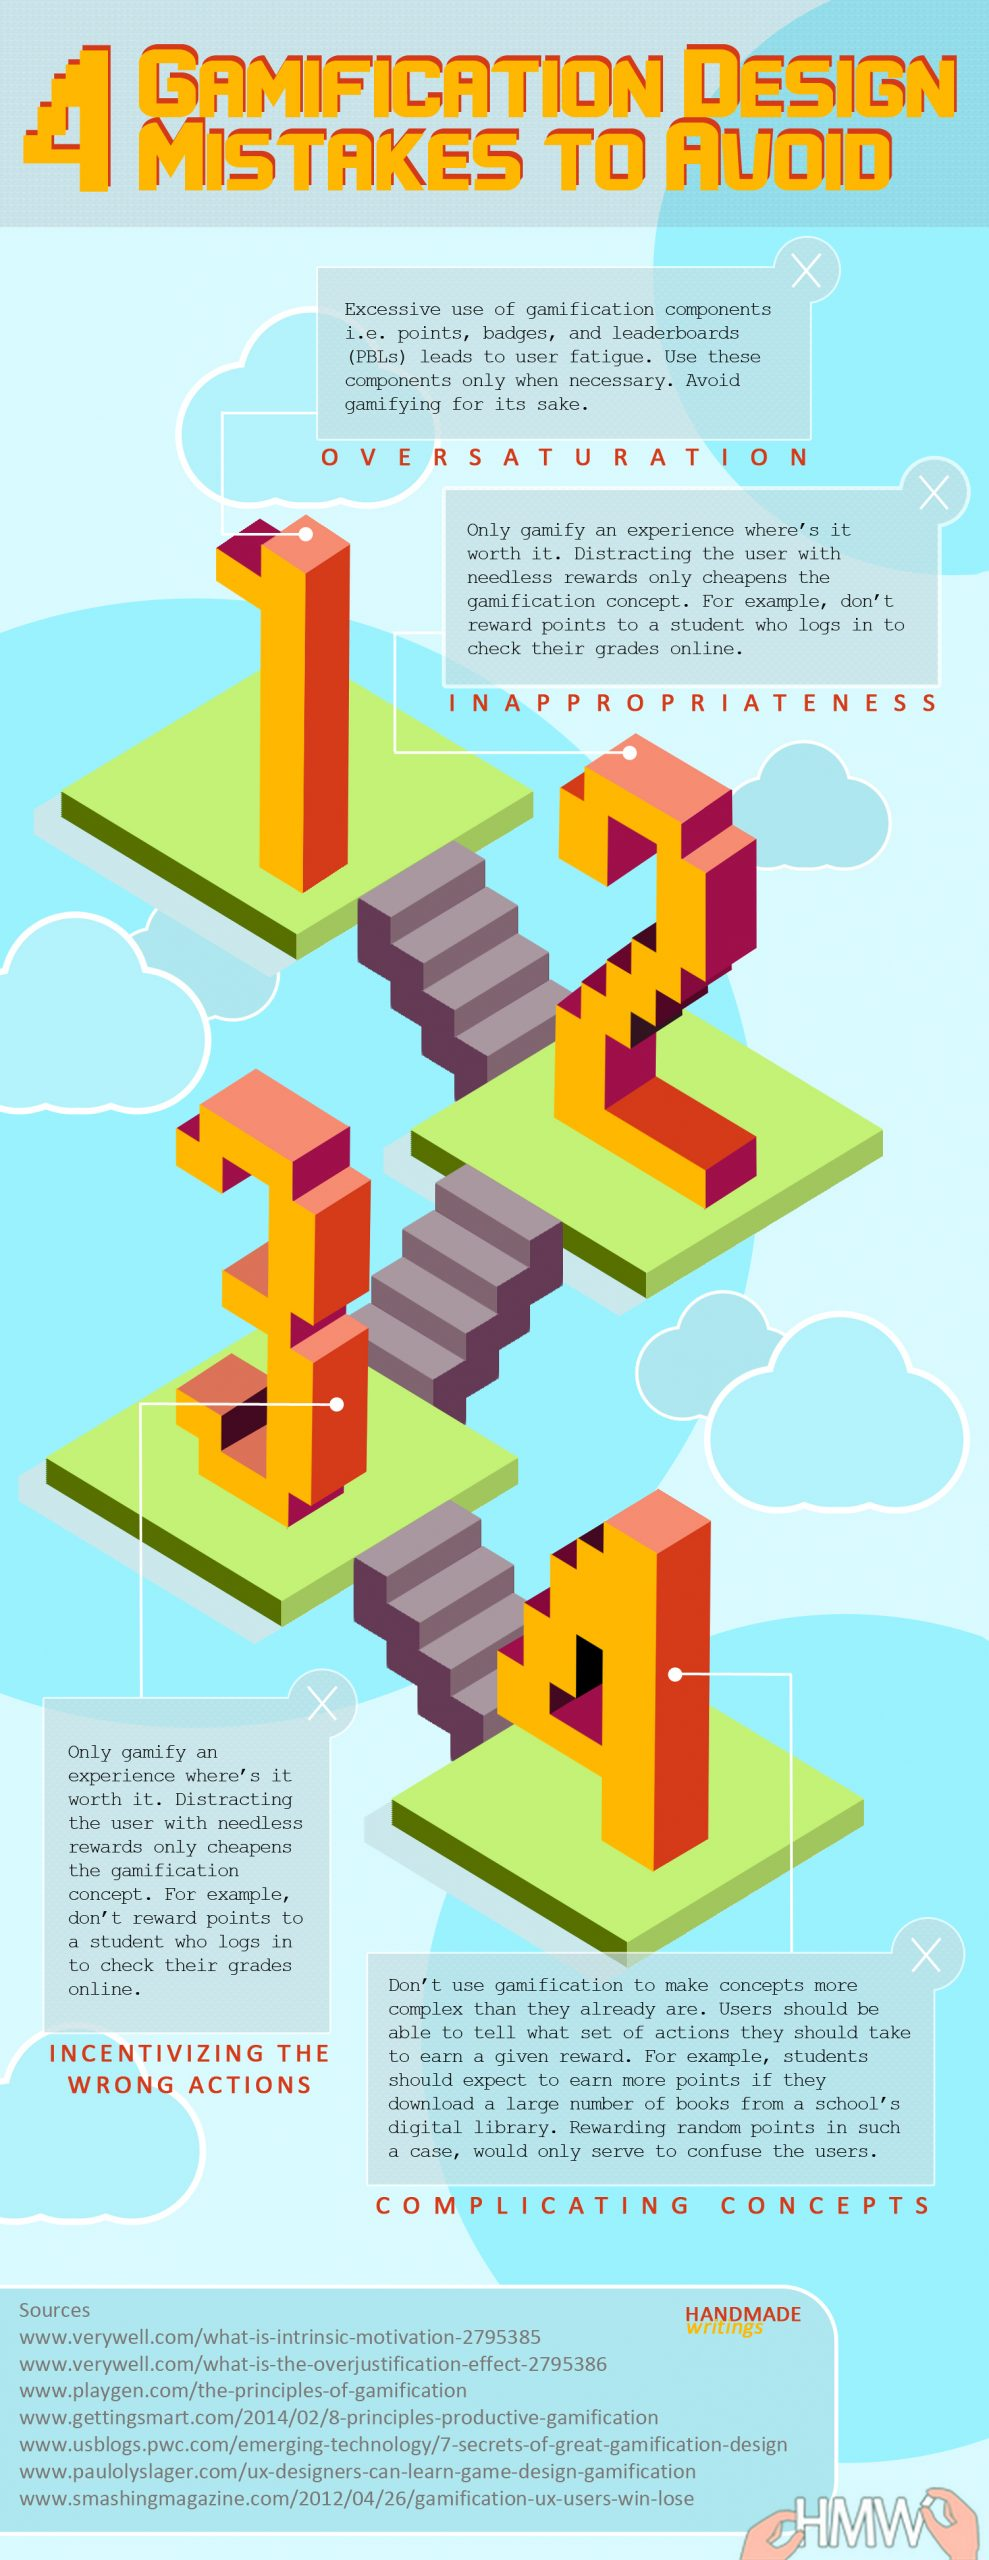 4 Gamification design mistakes to avoid